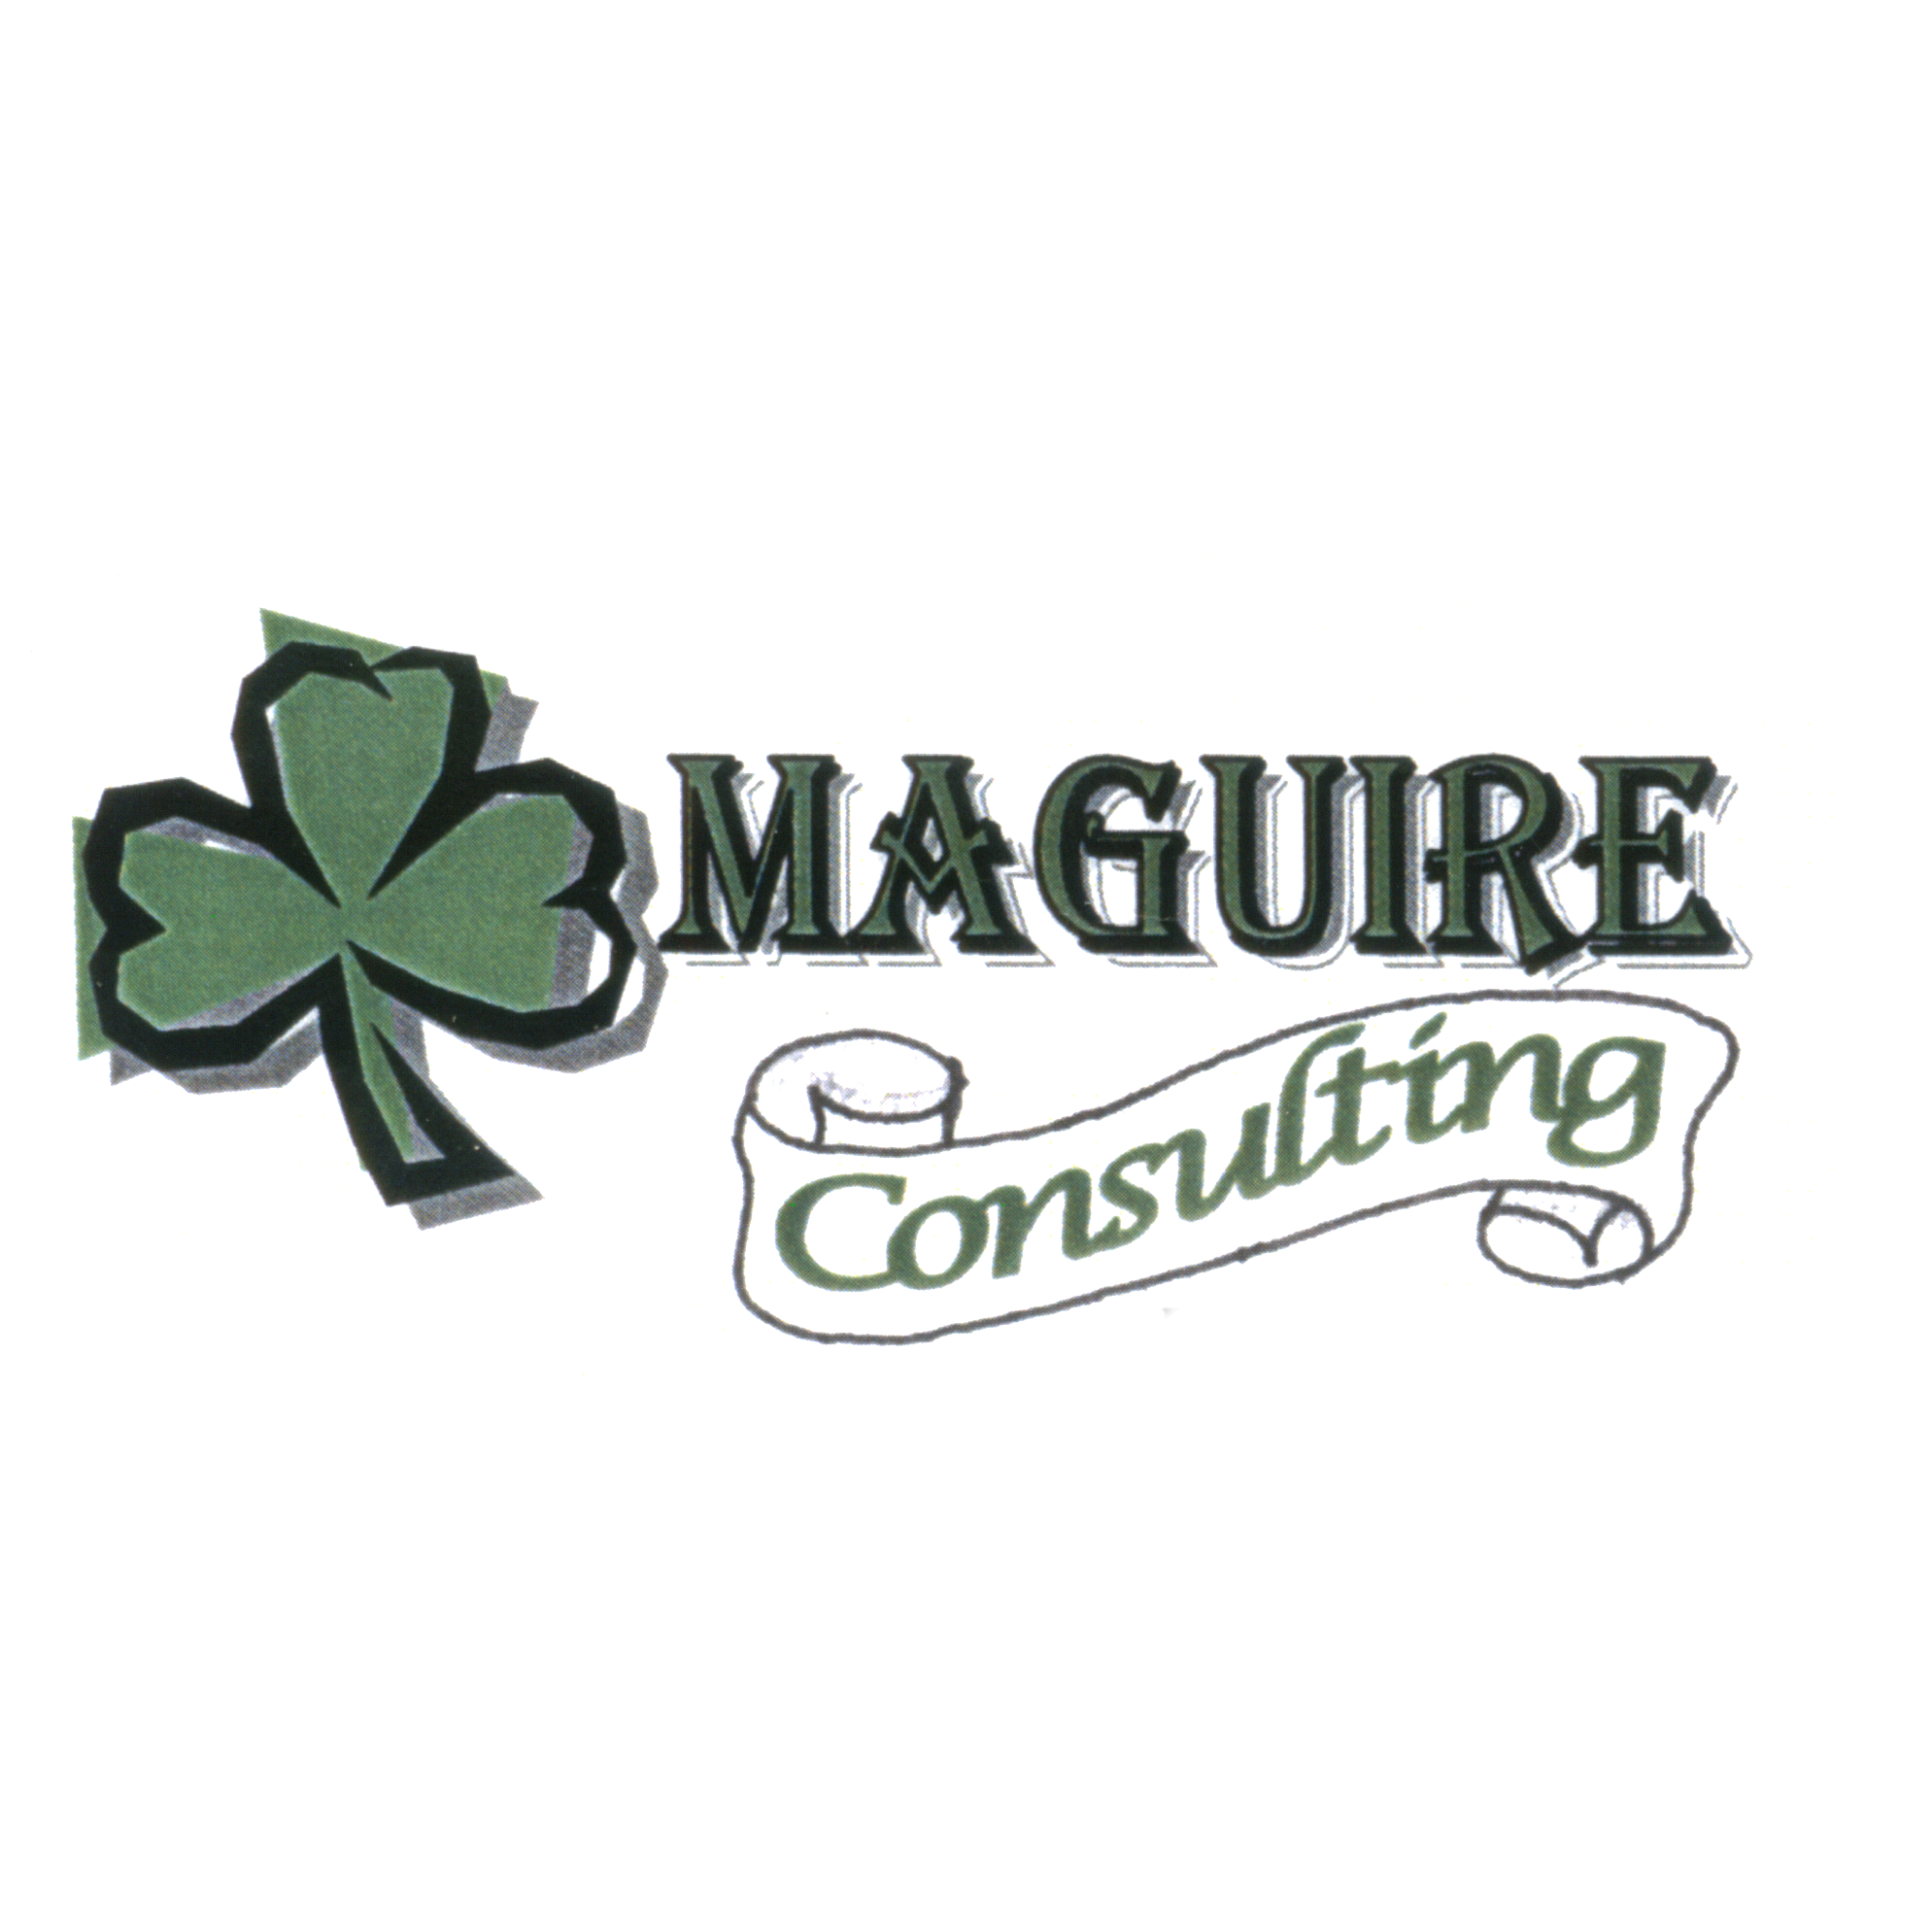 Maguire Consulting LLC